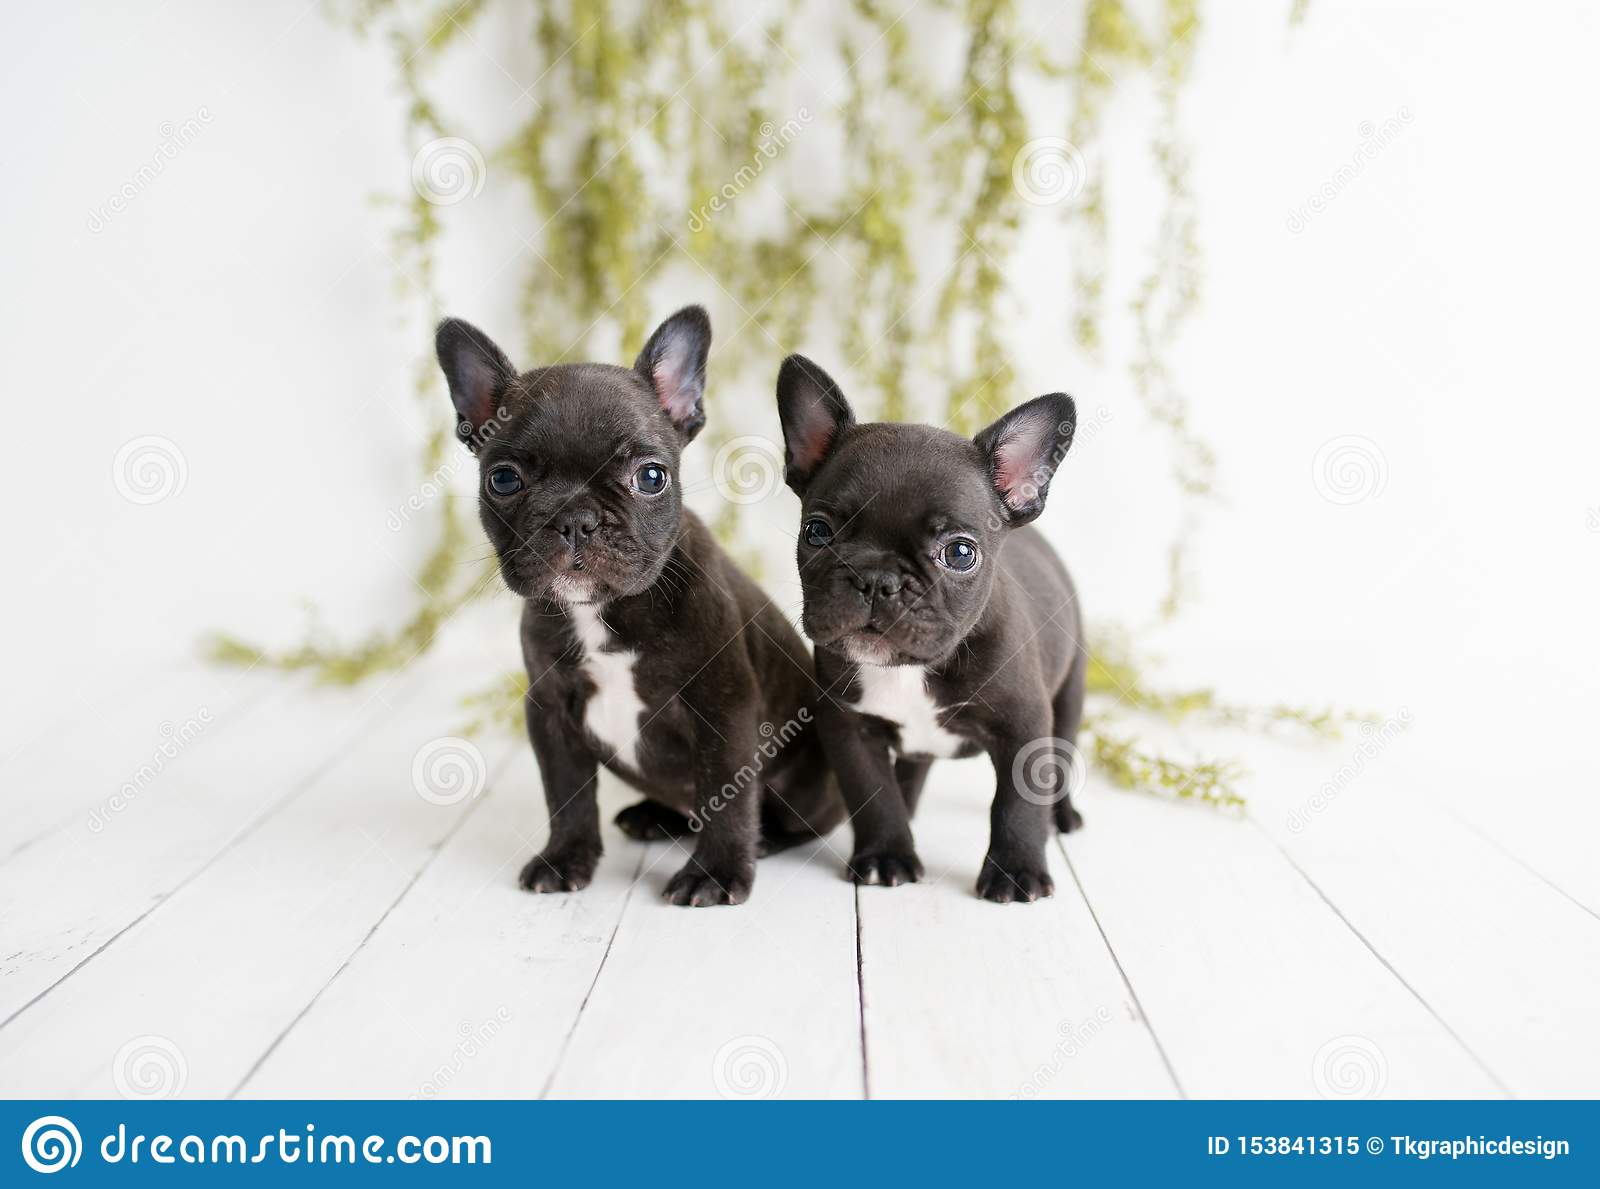 Portrait Of French Bulldogs Frenchies Puppies Stock Image Image Of Playful Lovely 153841315